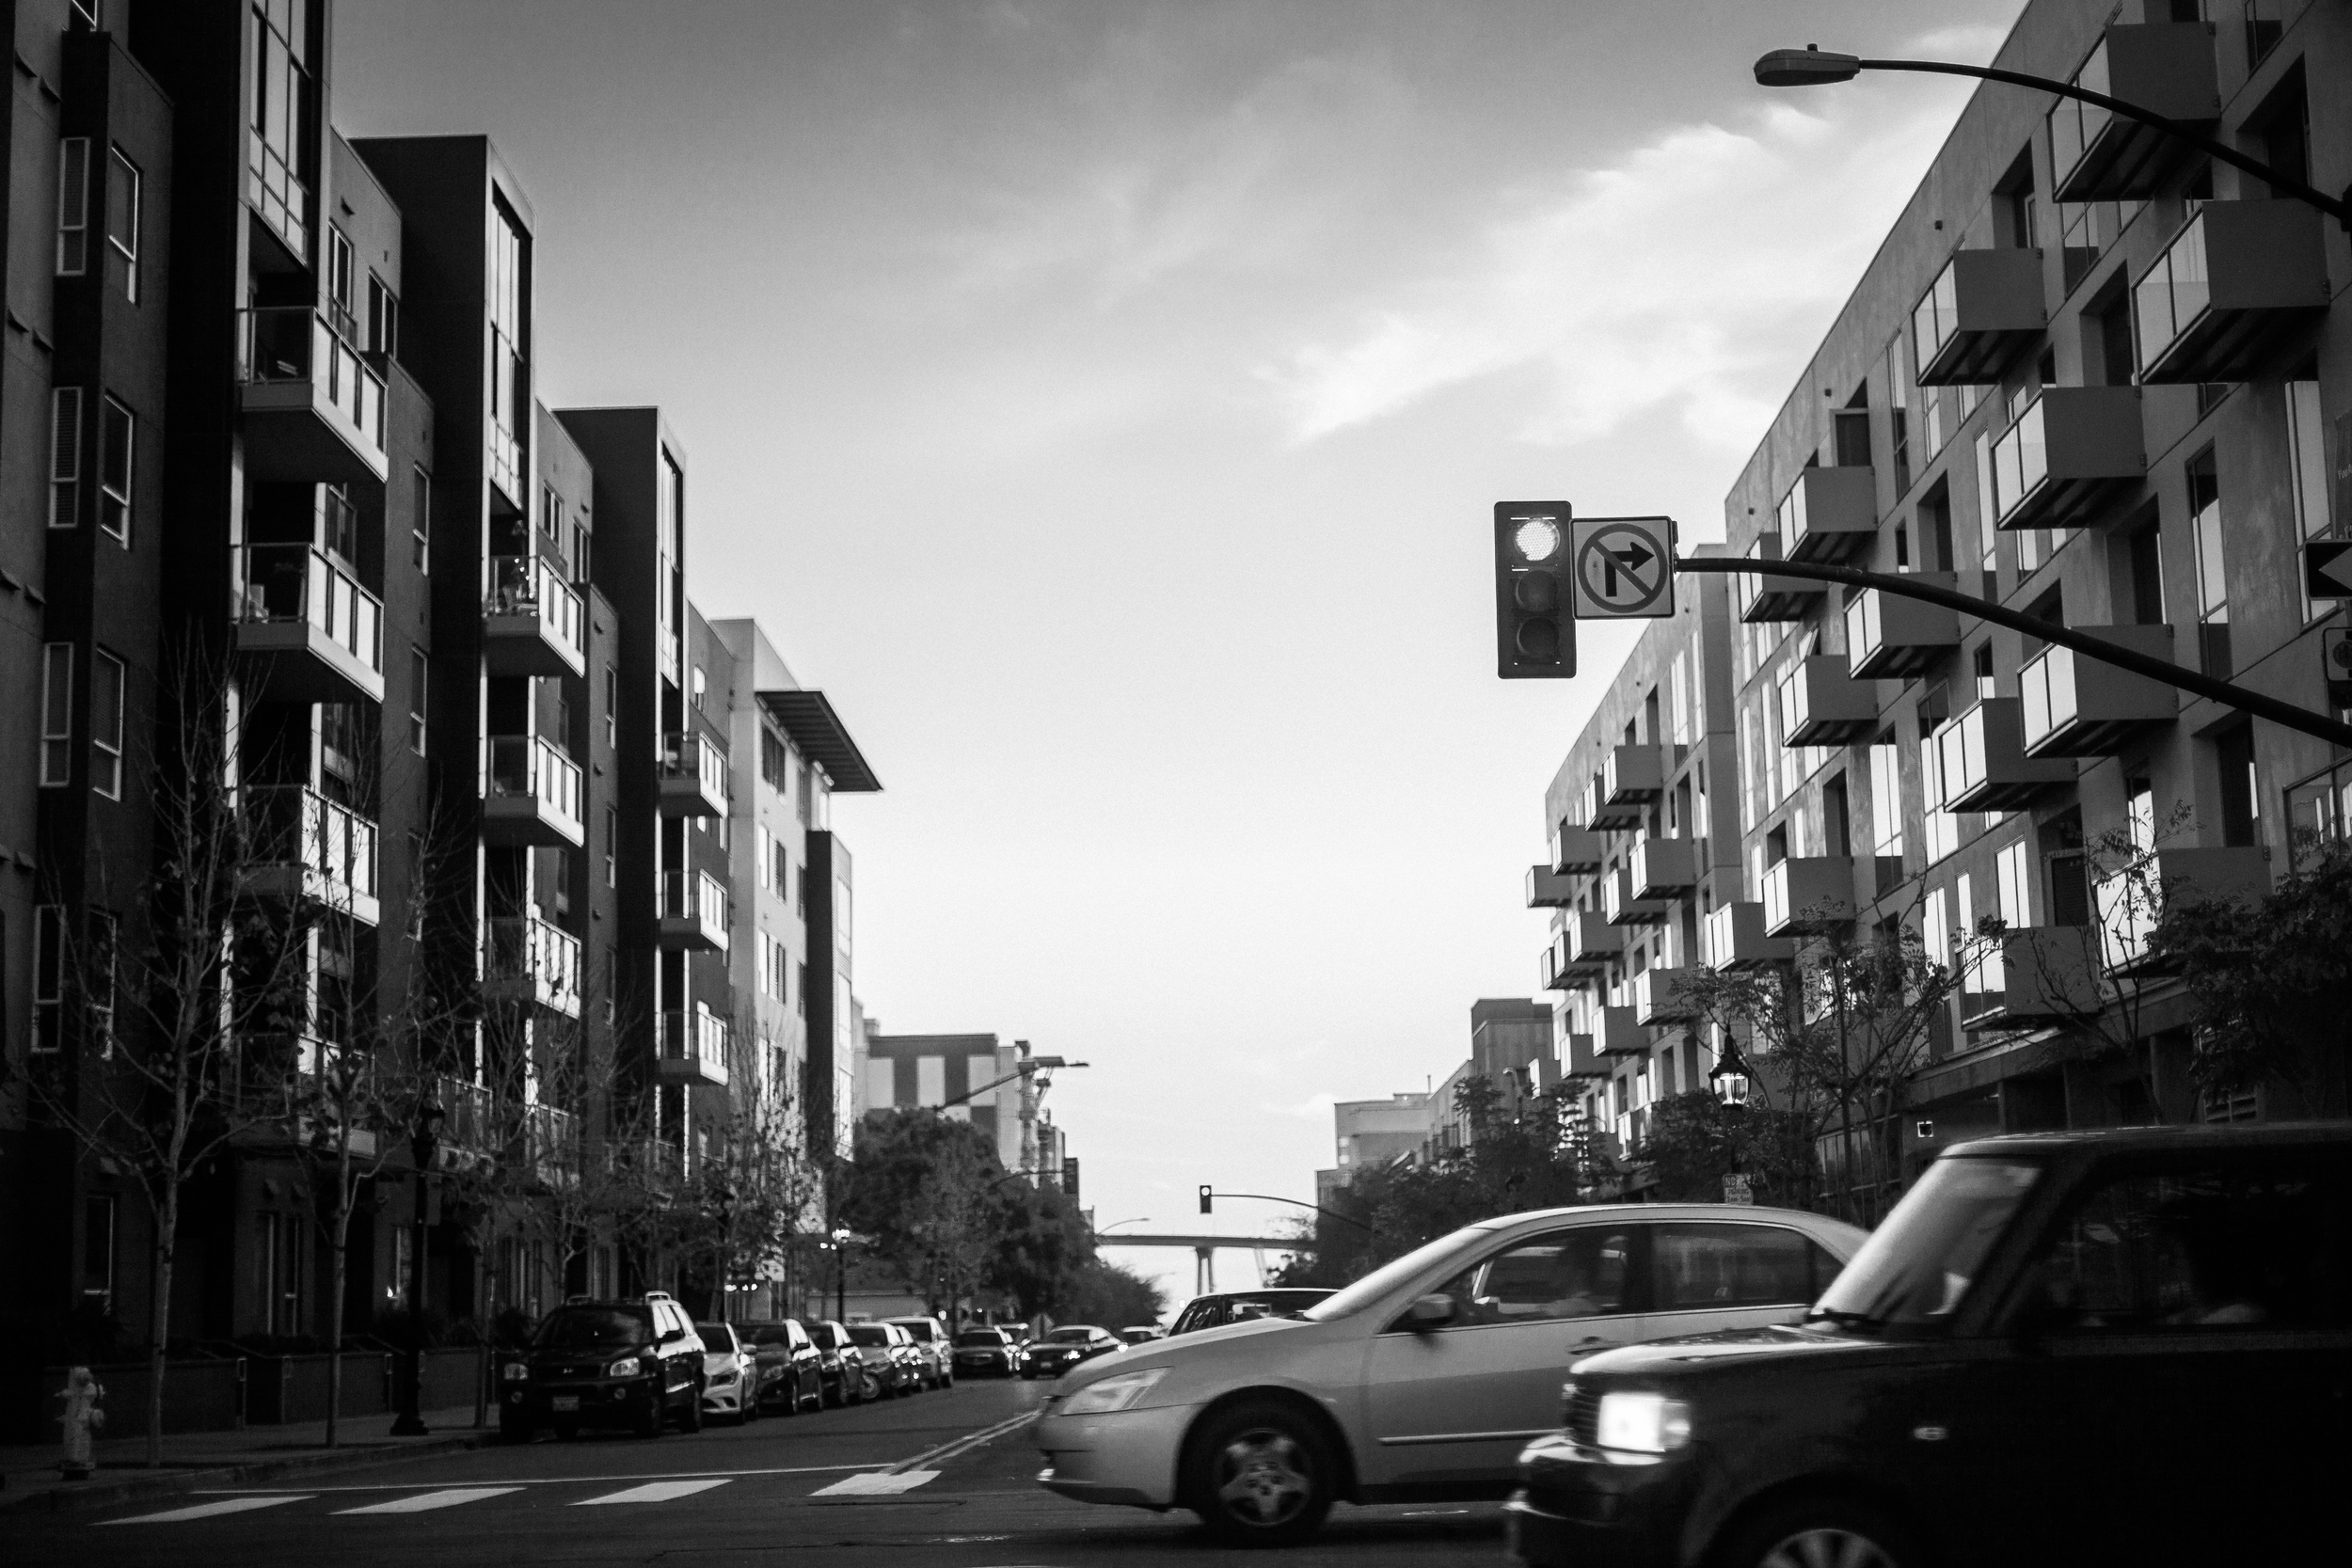 san diego wedding   photographer | monotone shot of street with cars passing by